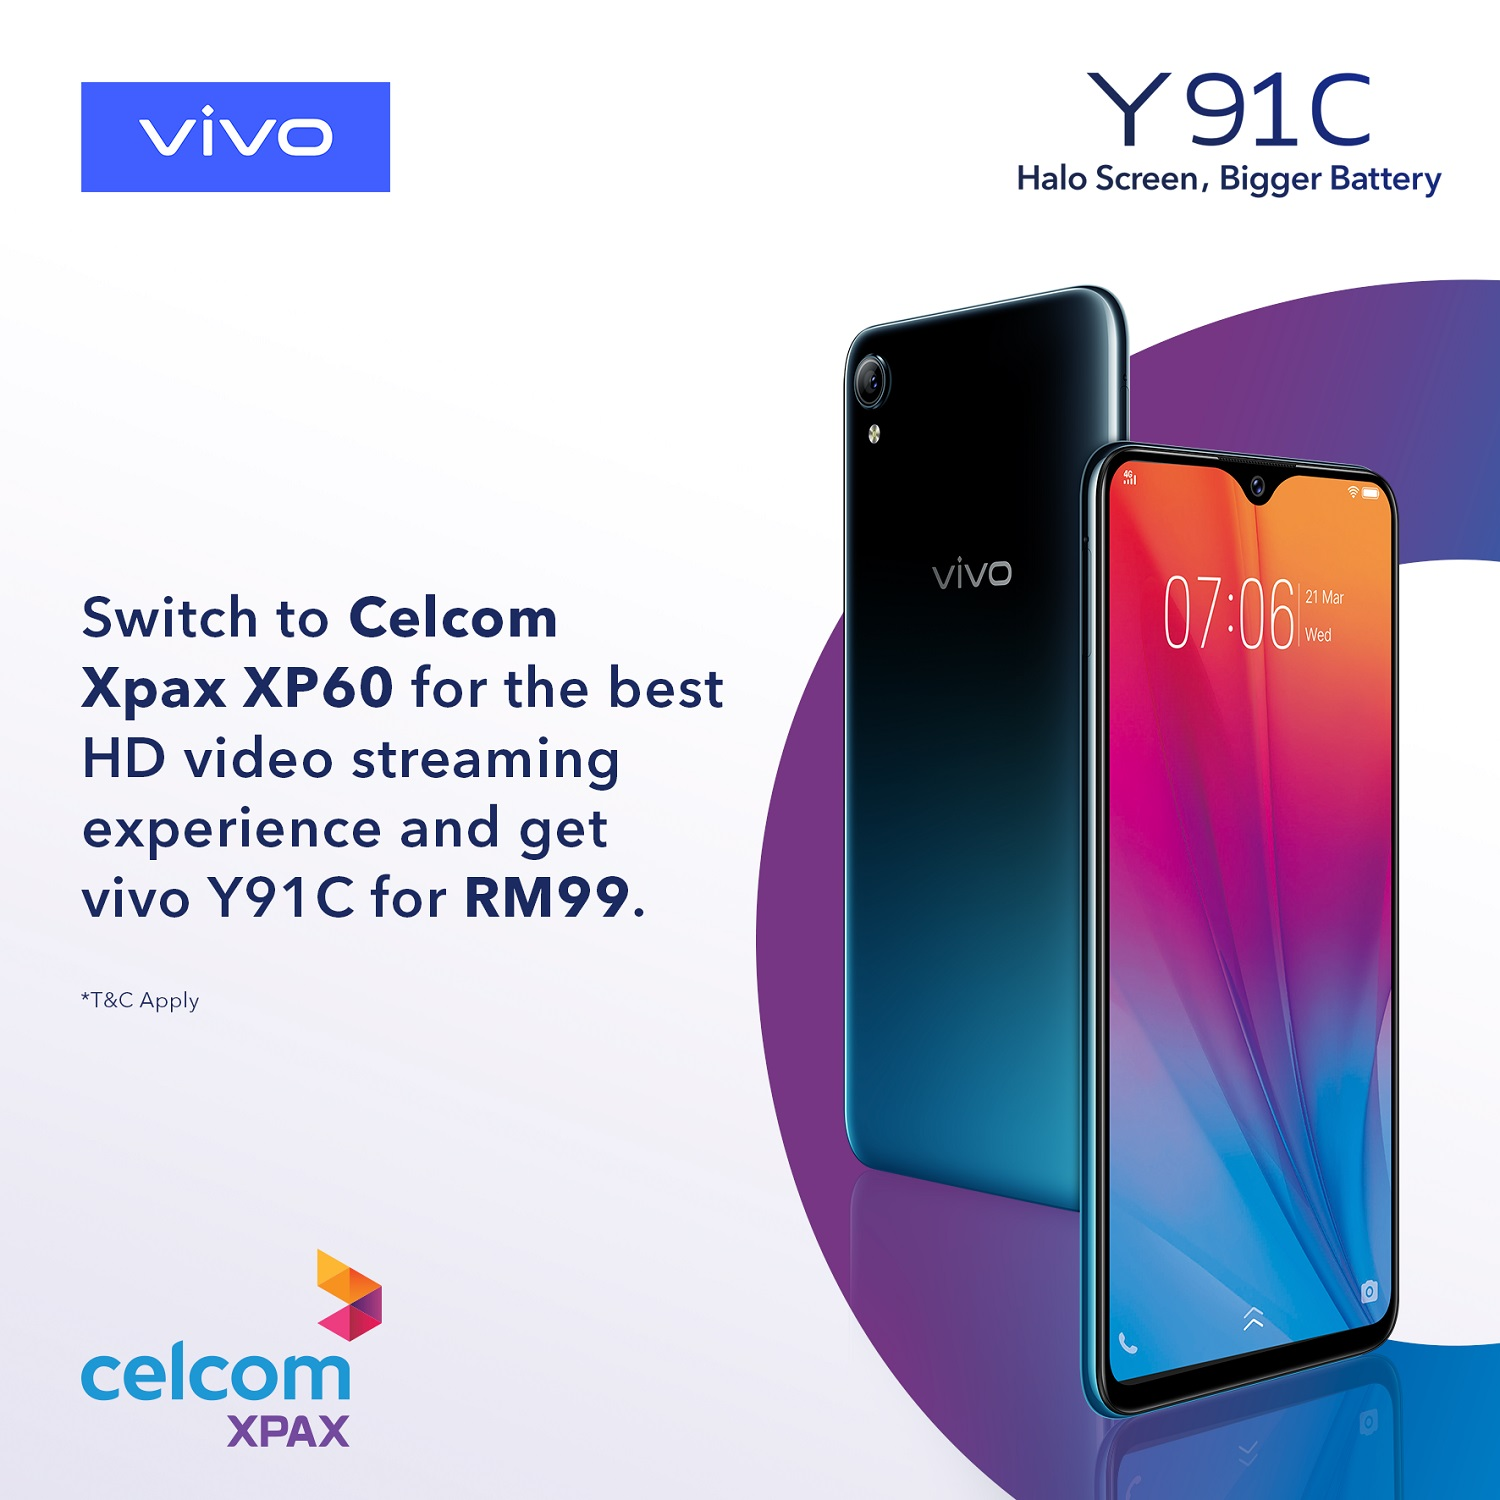 You Can Now Grab a Vivo Y91C for RM99 with Celcom Xpax